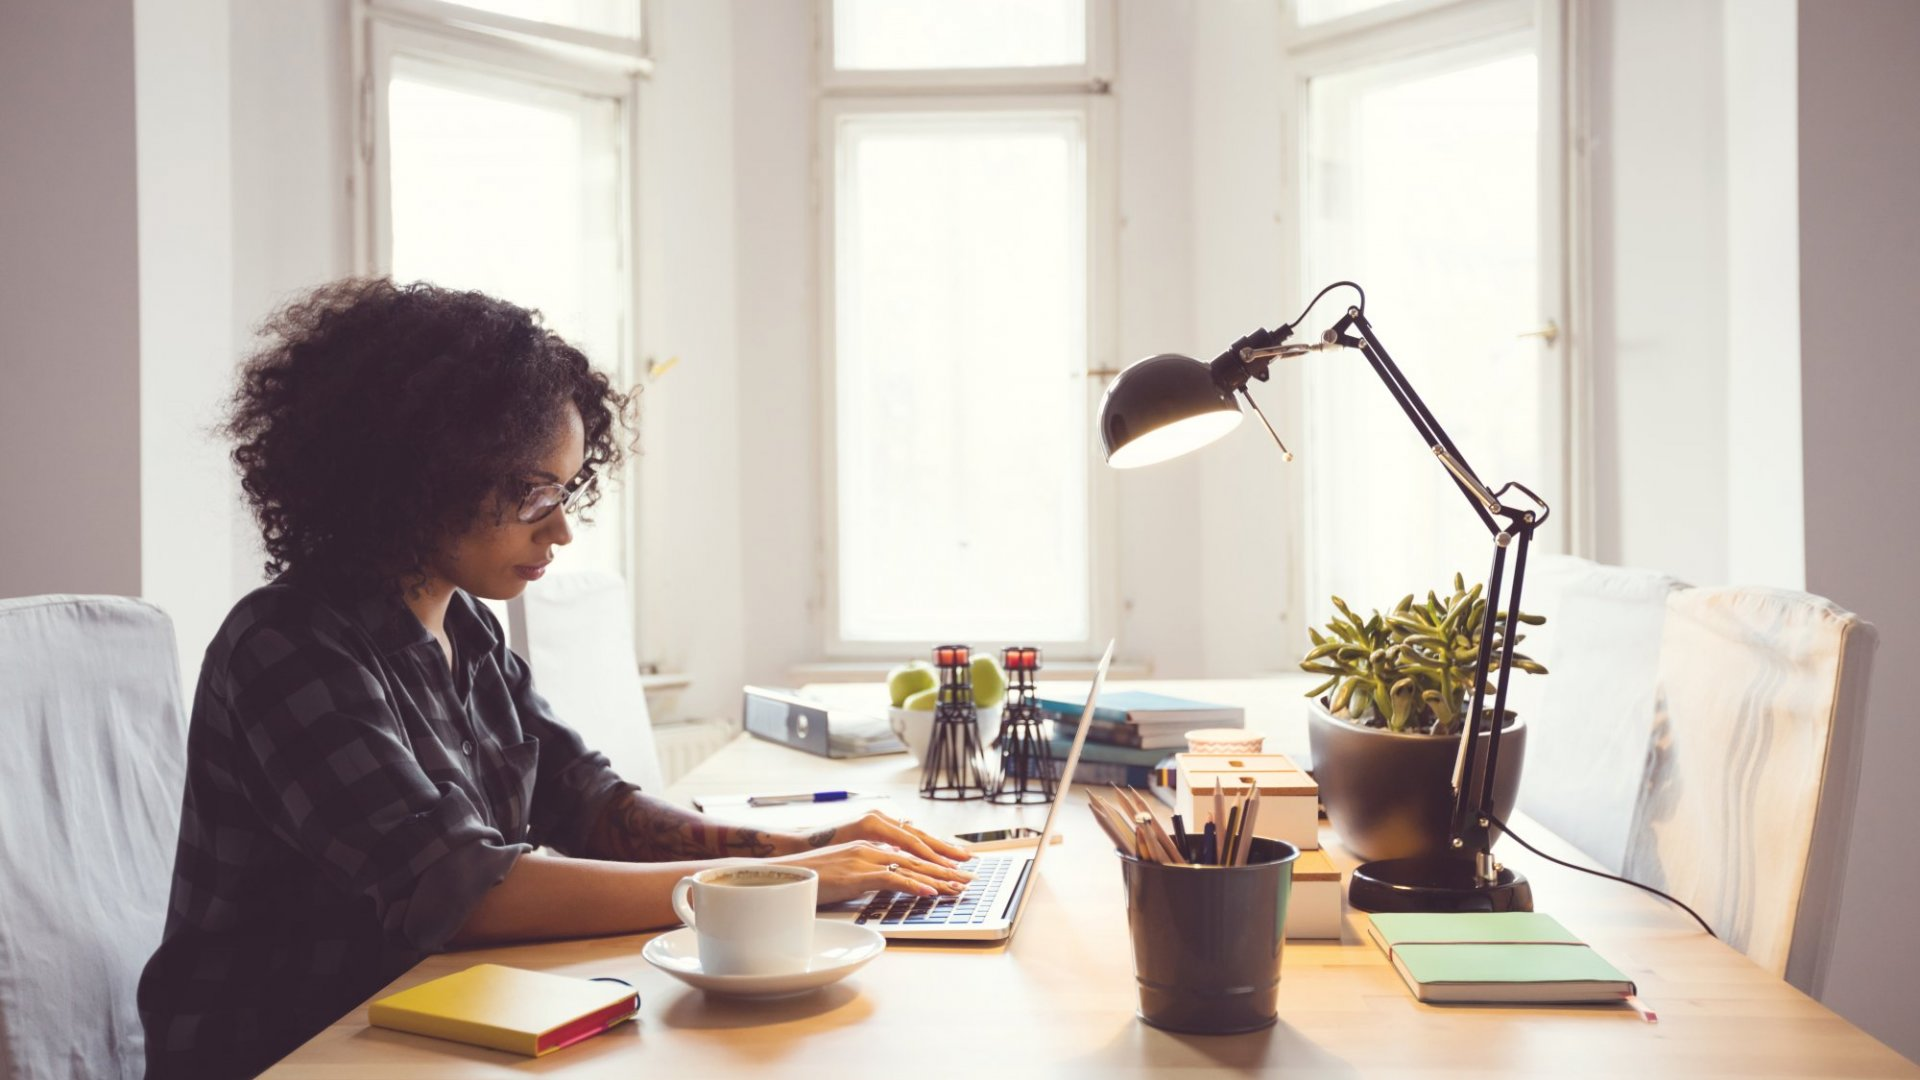 Women Who Freelance Are Paid a Third Less Than Men: Time to Change That